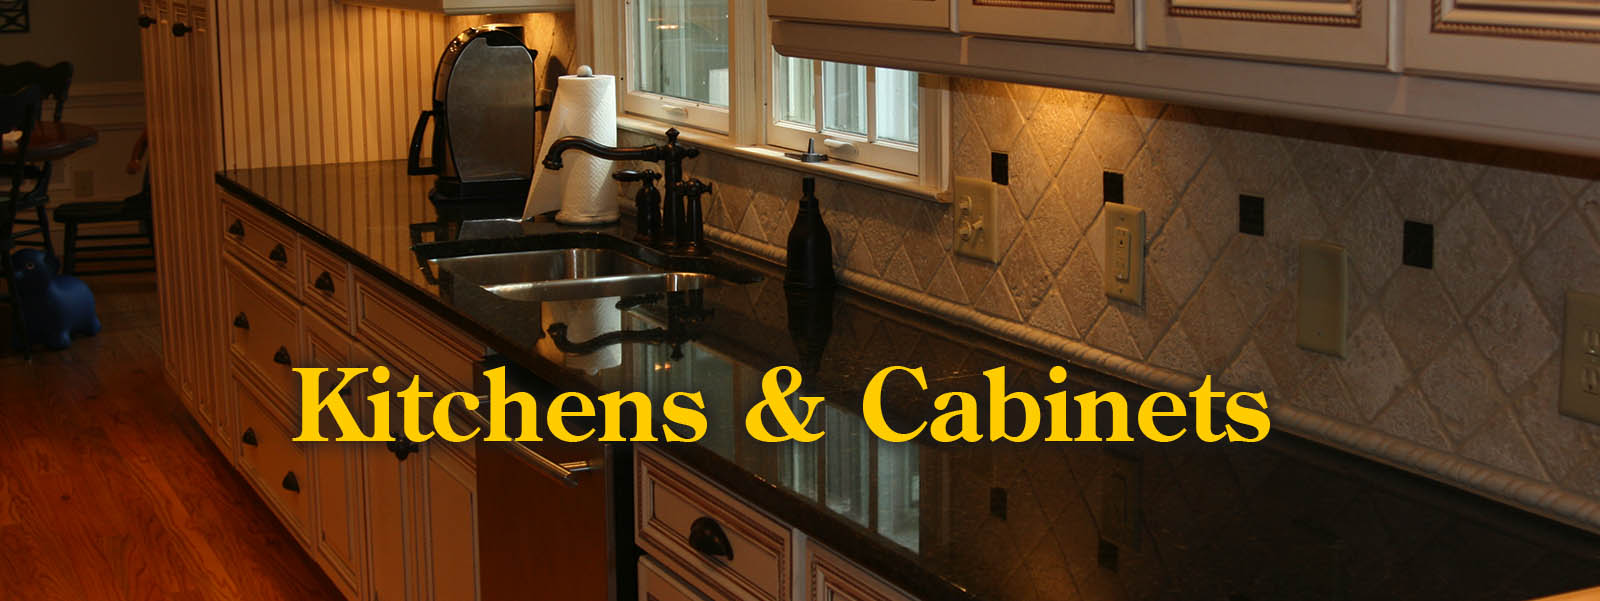 Kitchen & cabinetry remodeling